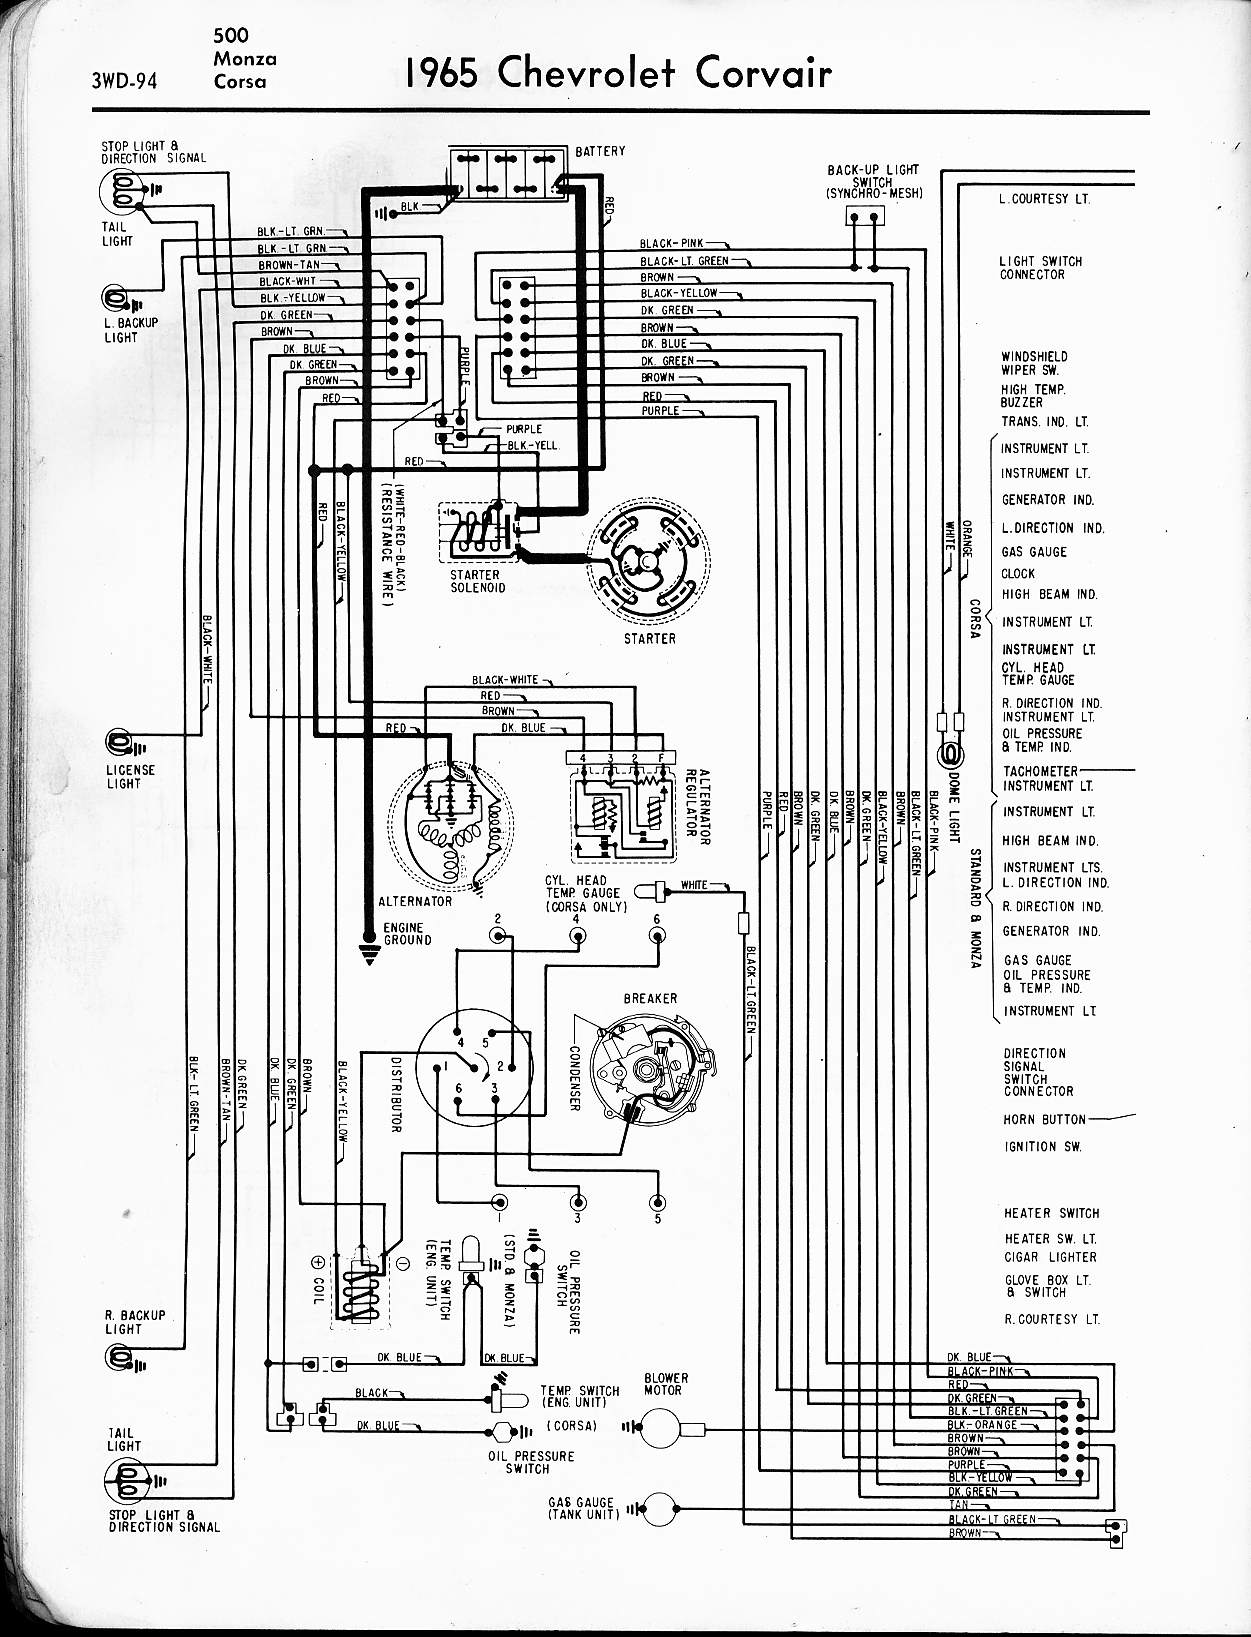 [QNCB_7524]  FA6EB1 1968 Chevelle Alternator Wiring Diagram | Wiring Library | Delco Radio Wiring Diagram 1968 Chevelle |  | Wiring Library